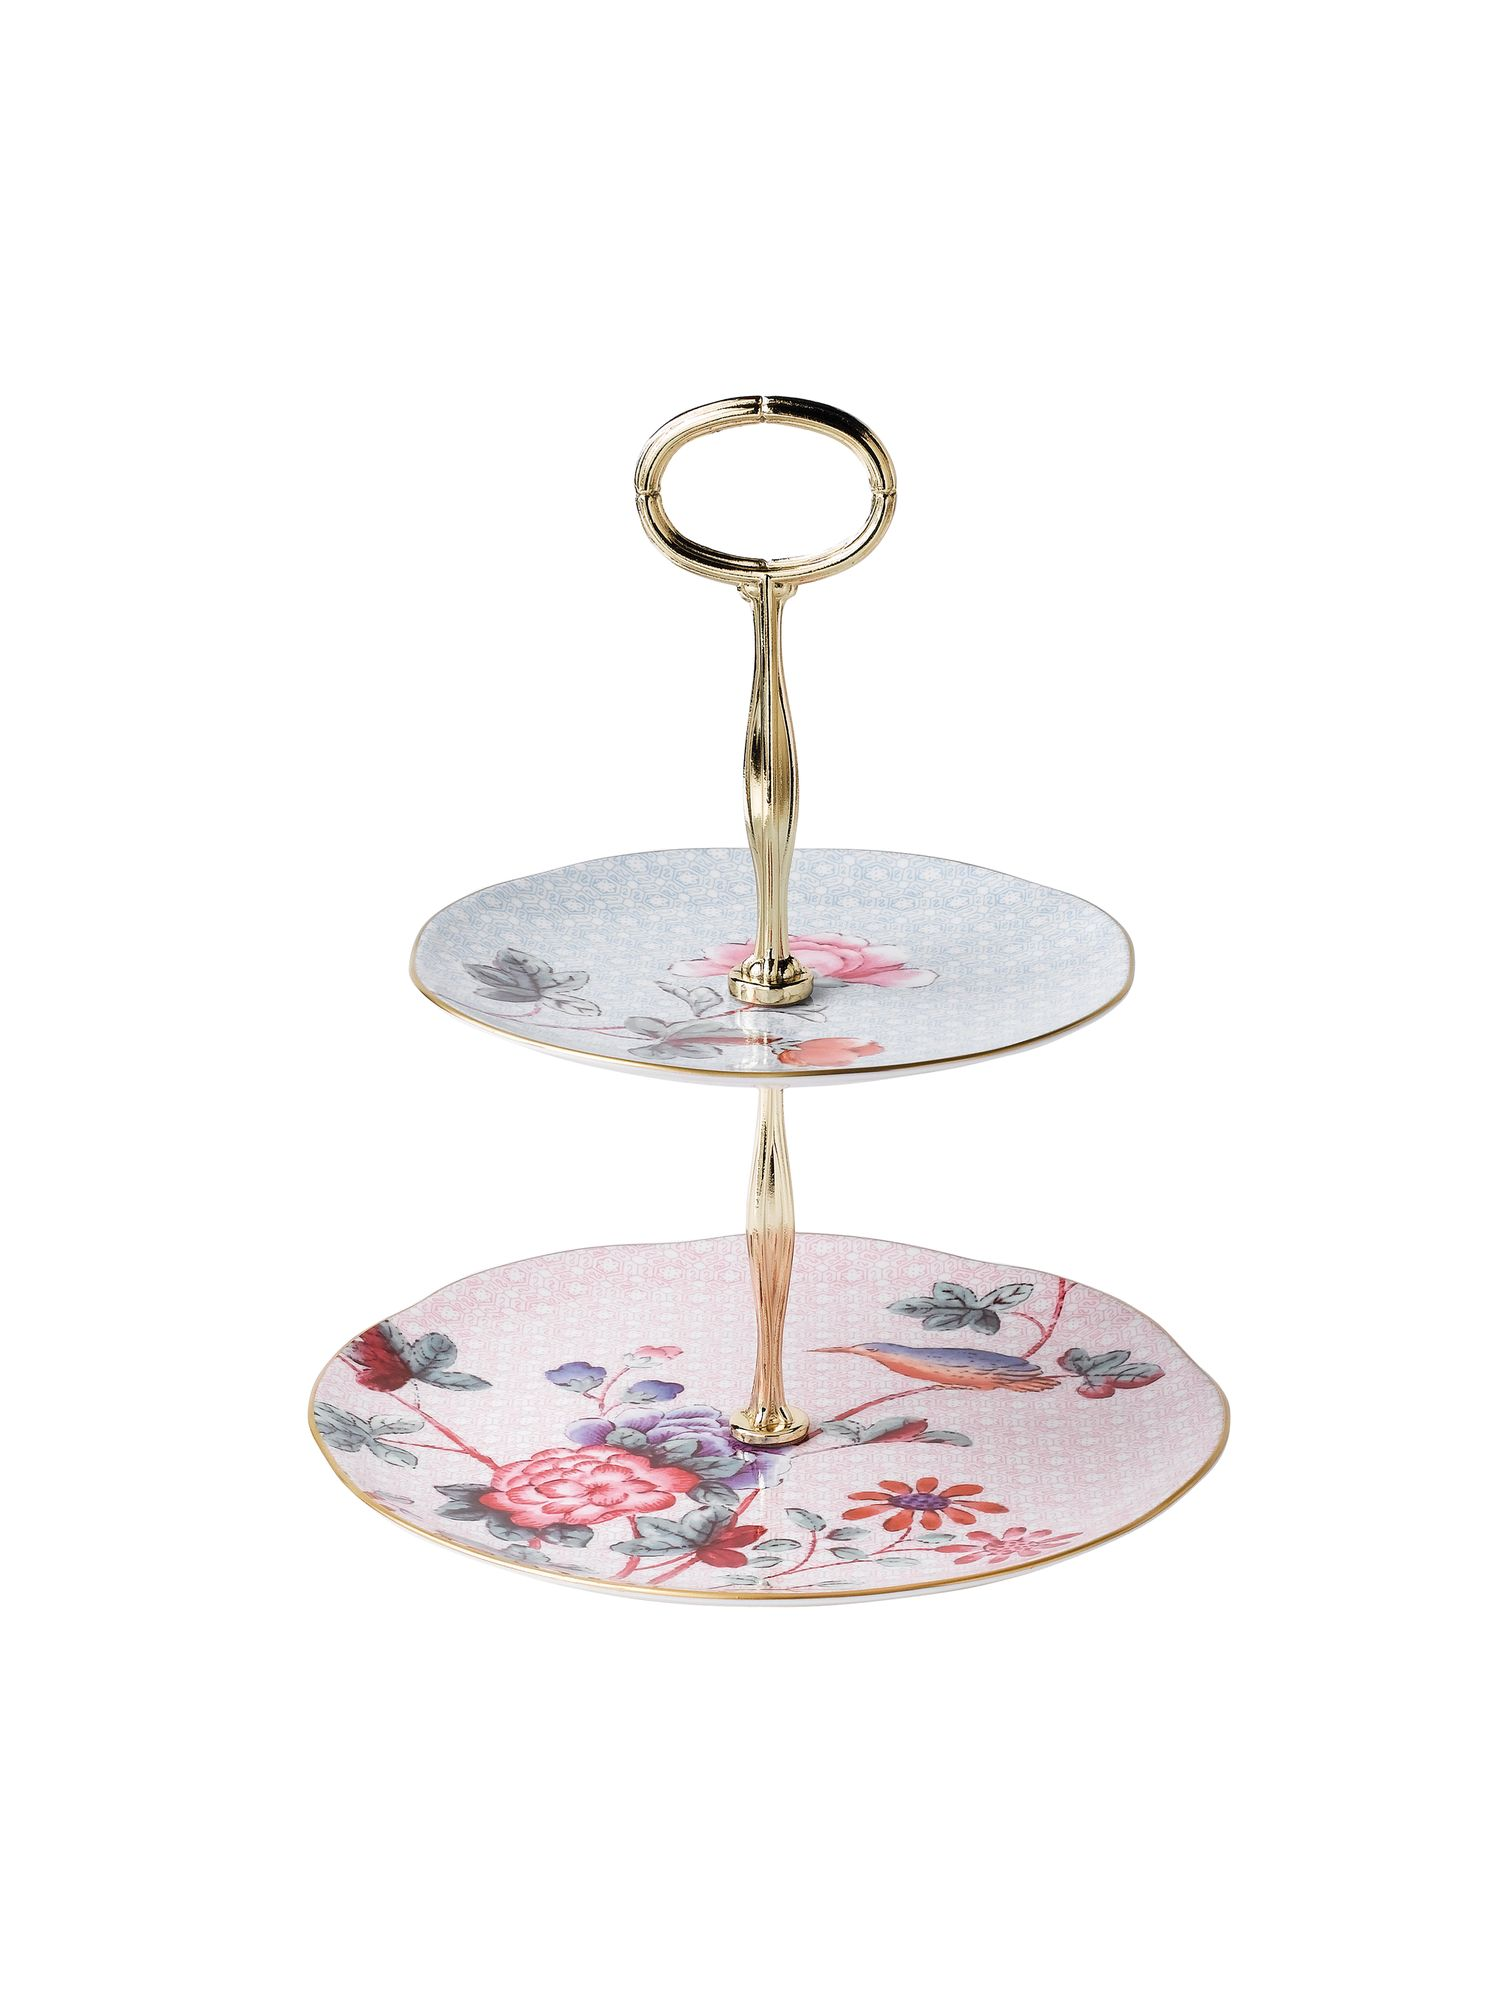 Harlequin cuckoo two tier cake stand